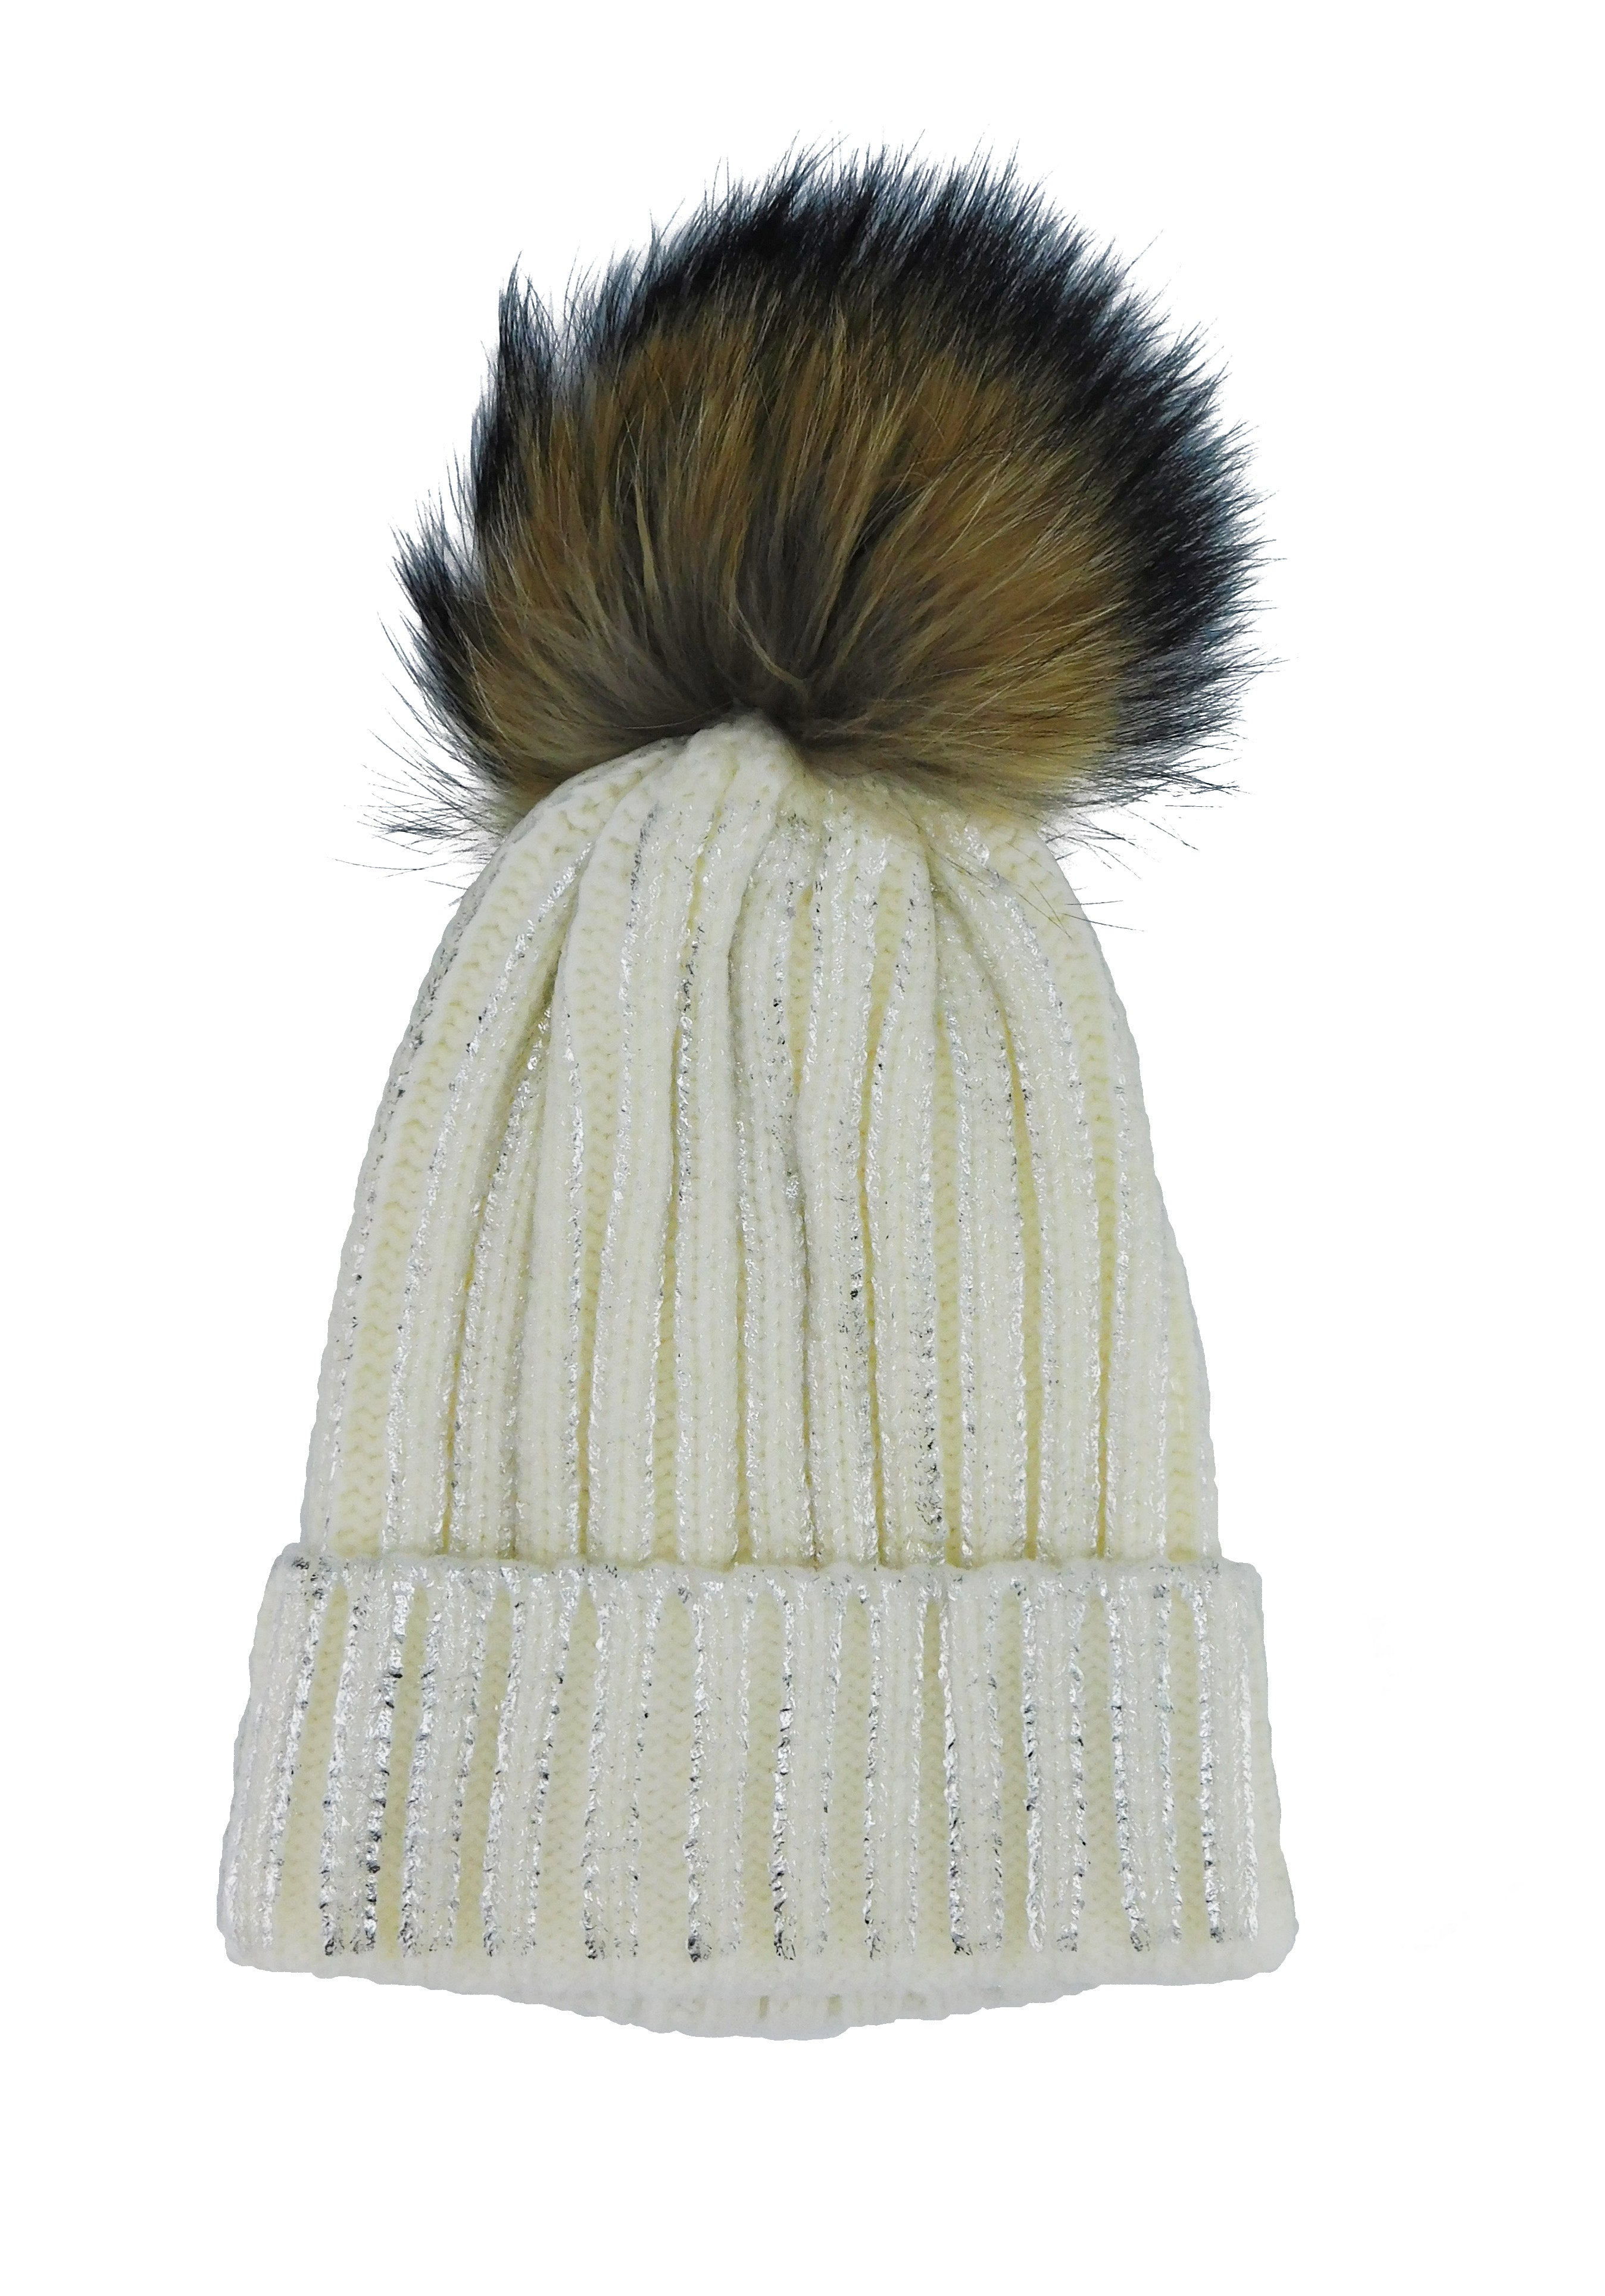 Metallic Striped Knitted Beanie with Removable Fur Poms - paulamarie